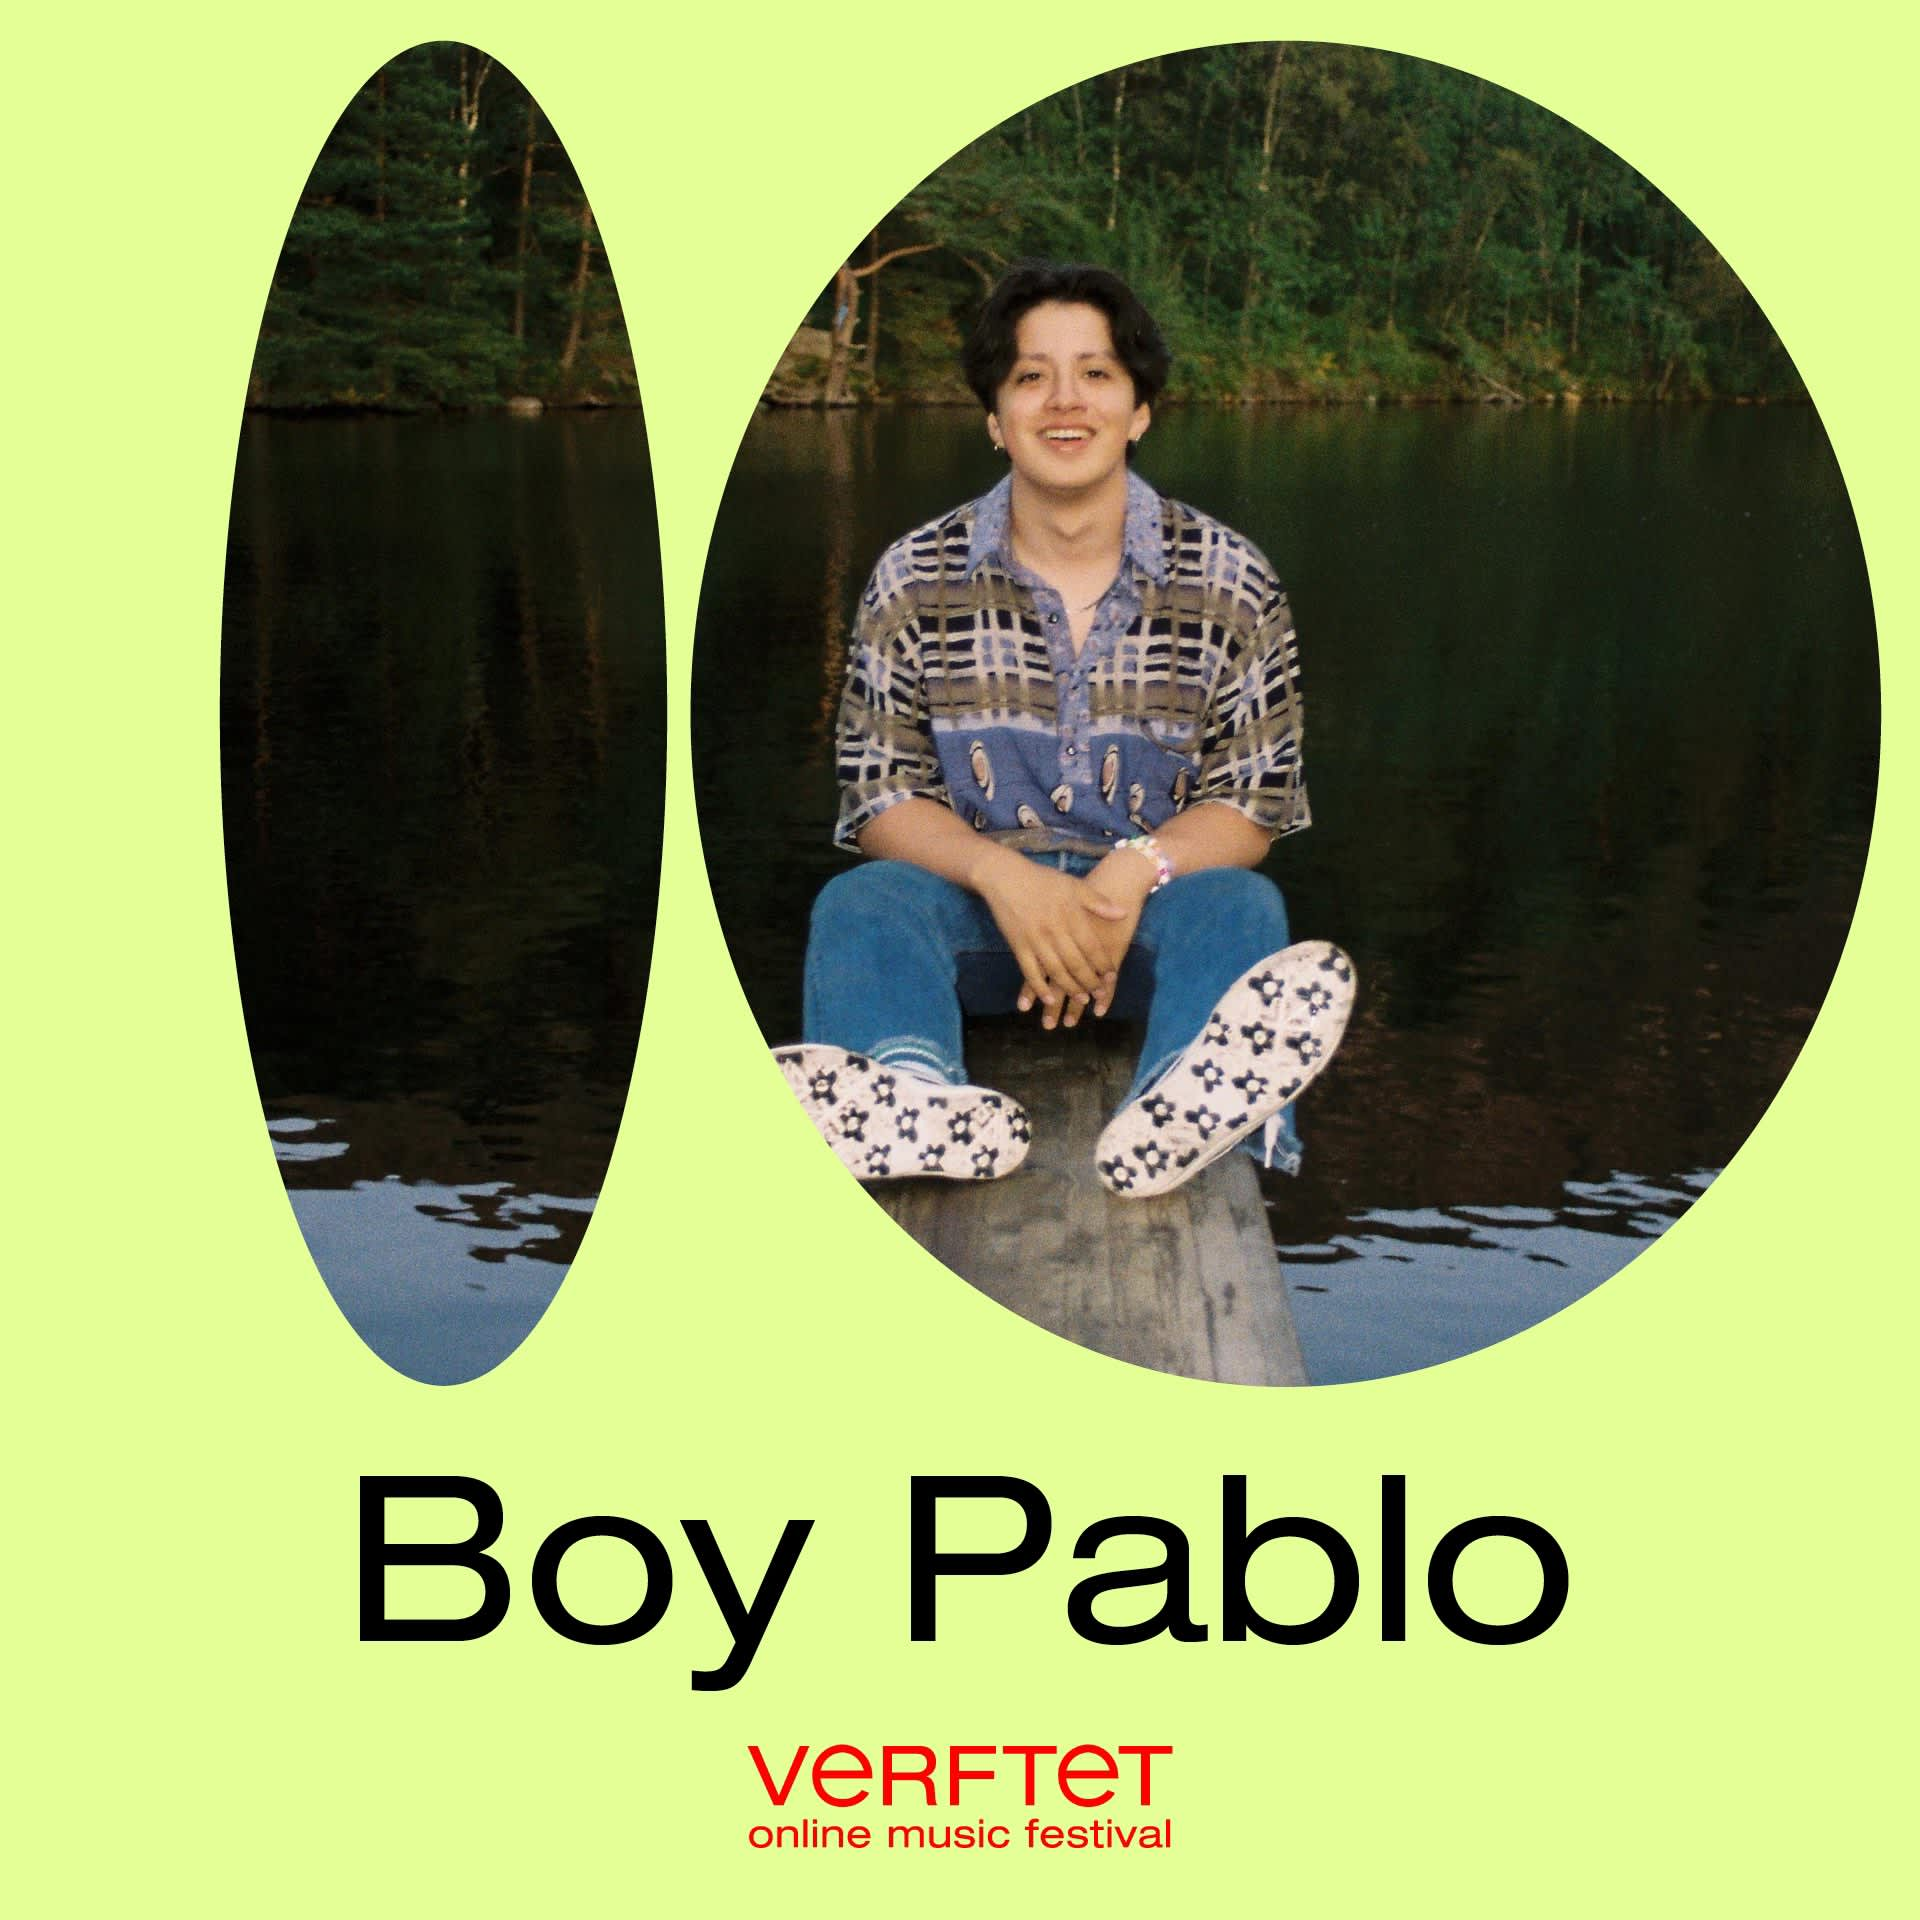 Boy Pablo streaming live at Verftet